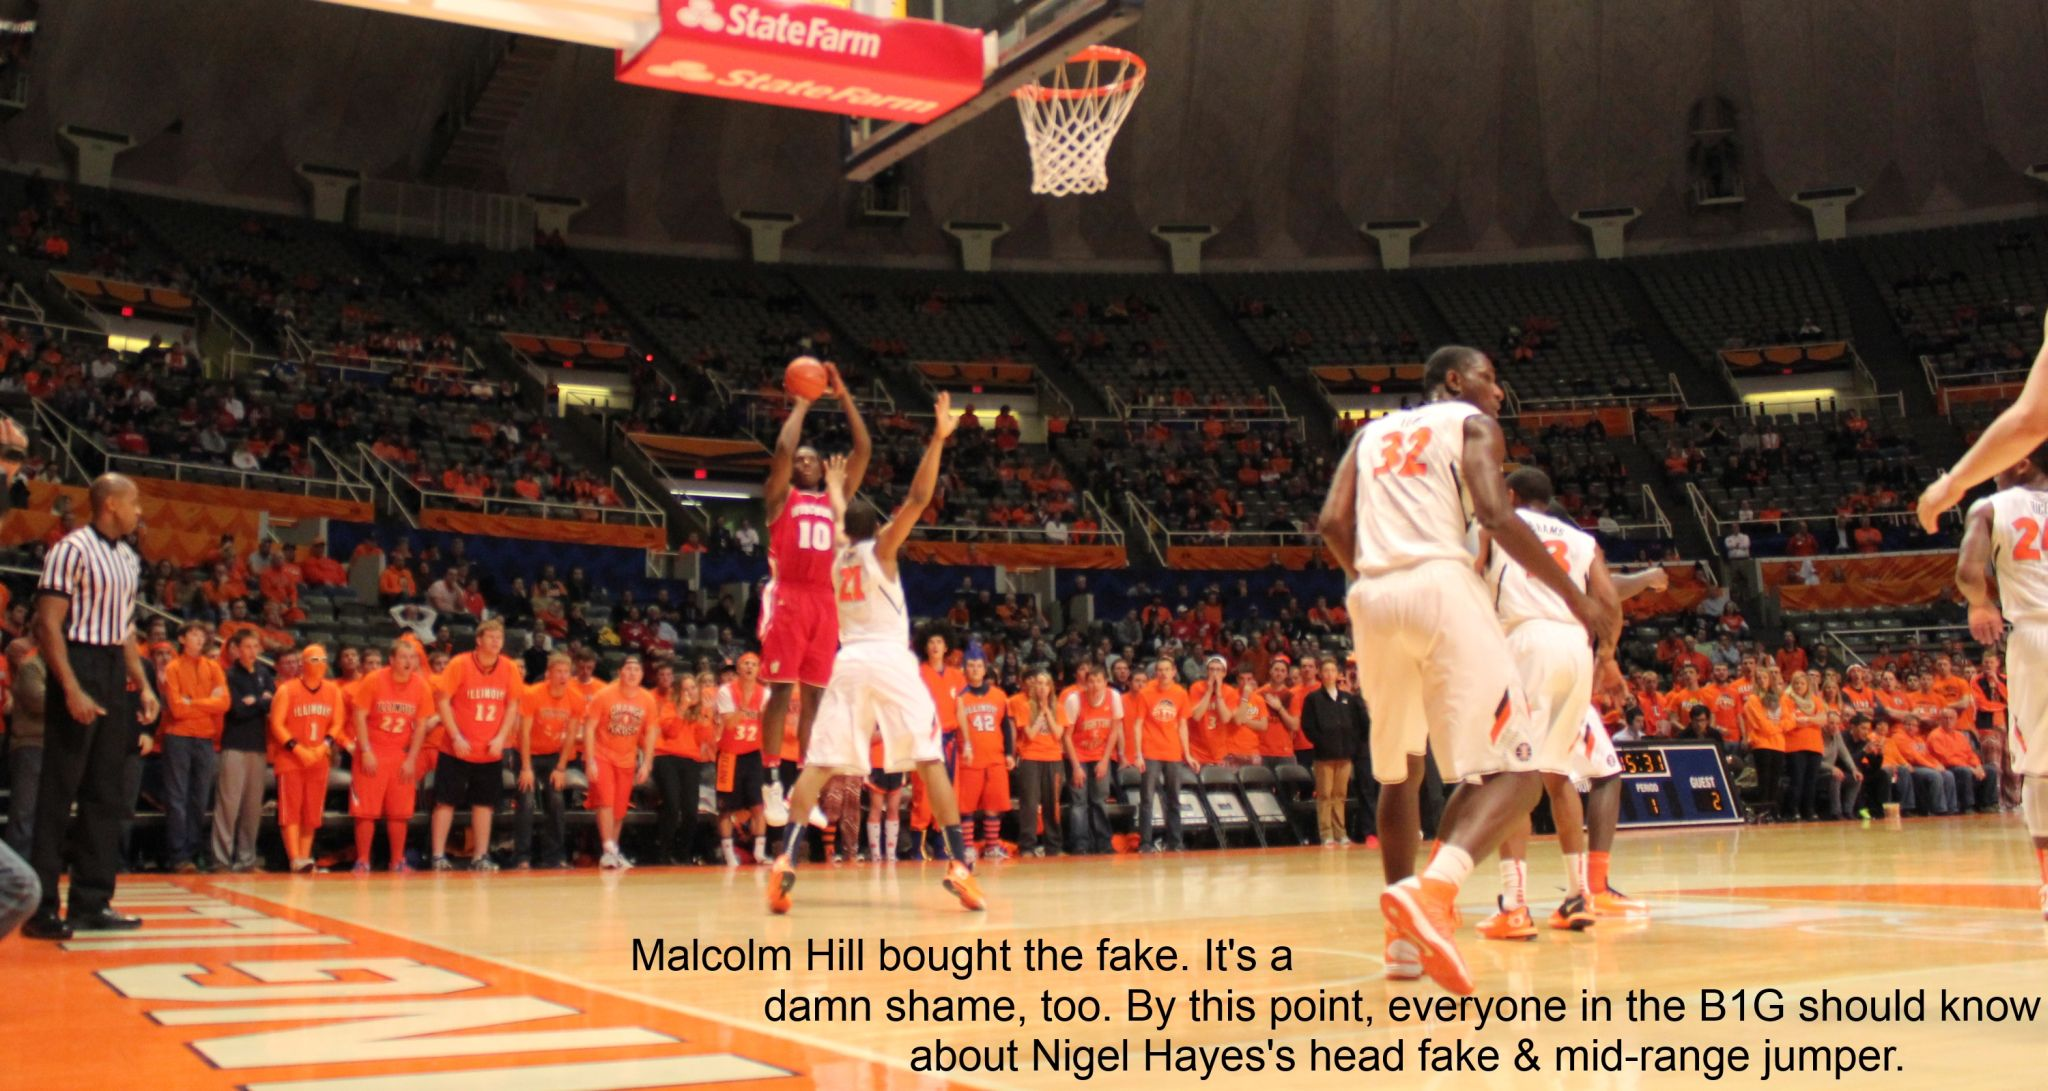 Malcolm Hill and Nigel Hayes